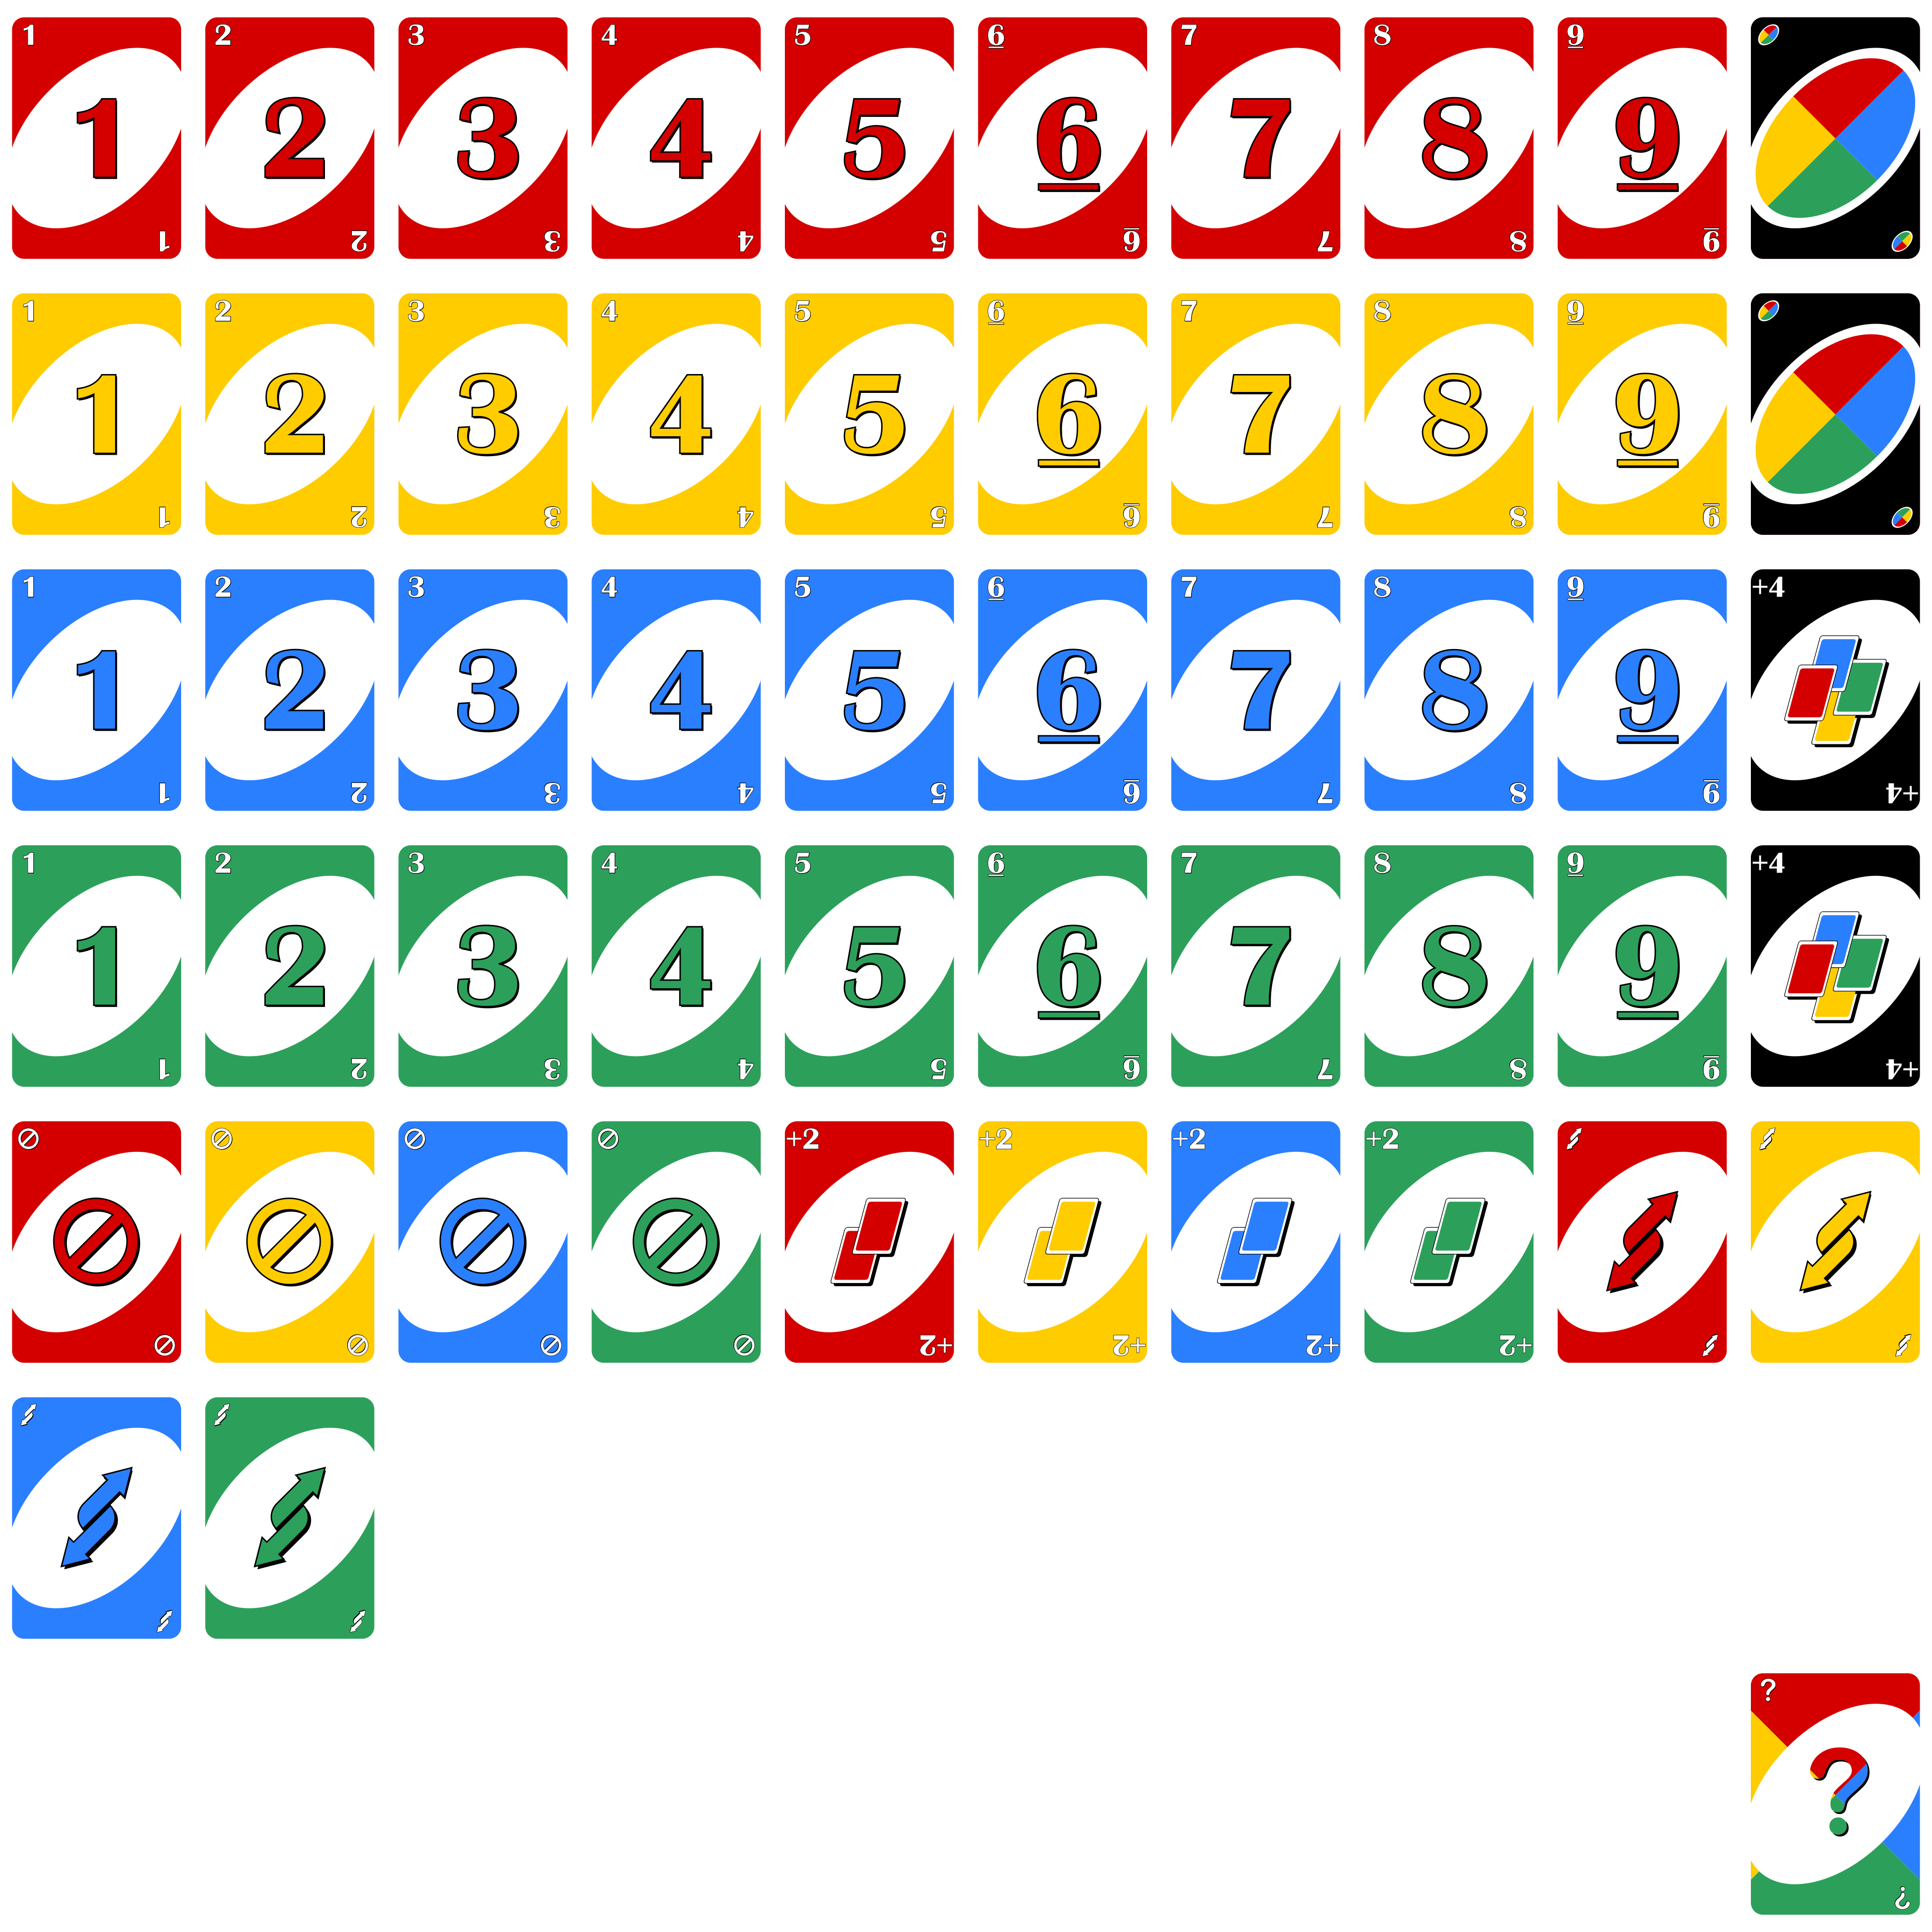 Uno cards png. Opengameart org unofrontpng mb